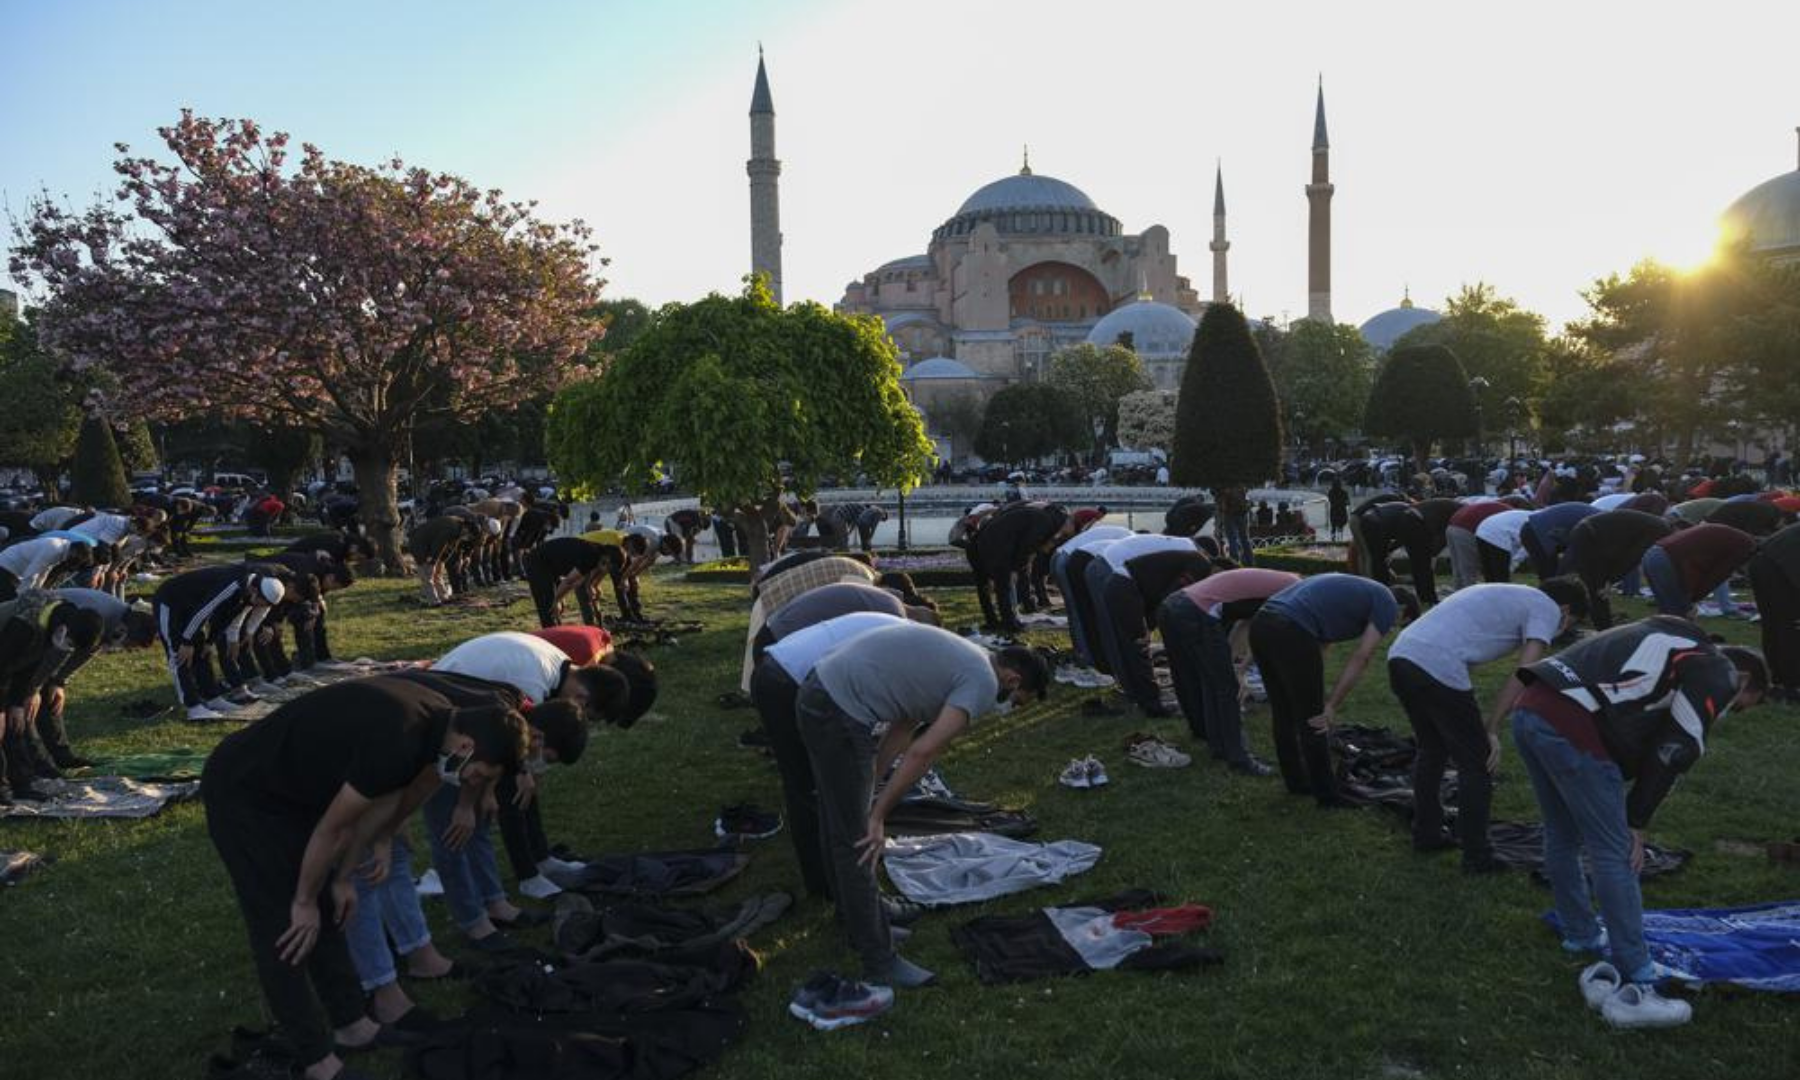 Muslims offer prayers during the first day of Eidul Fitr outside the Byzantine-era Hagia Sophia mosque in the historic Sultanahmet district of Istanbul. — AP